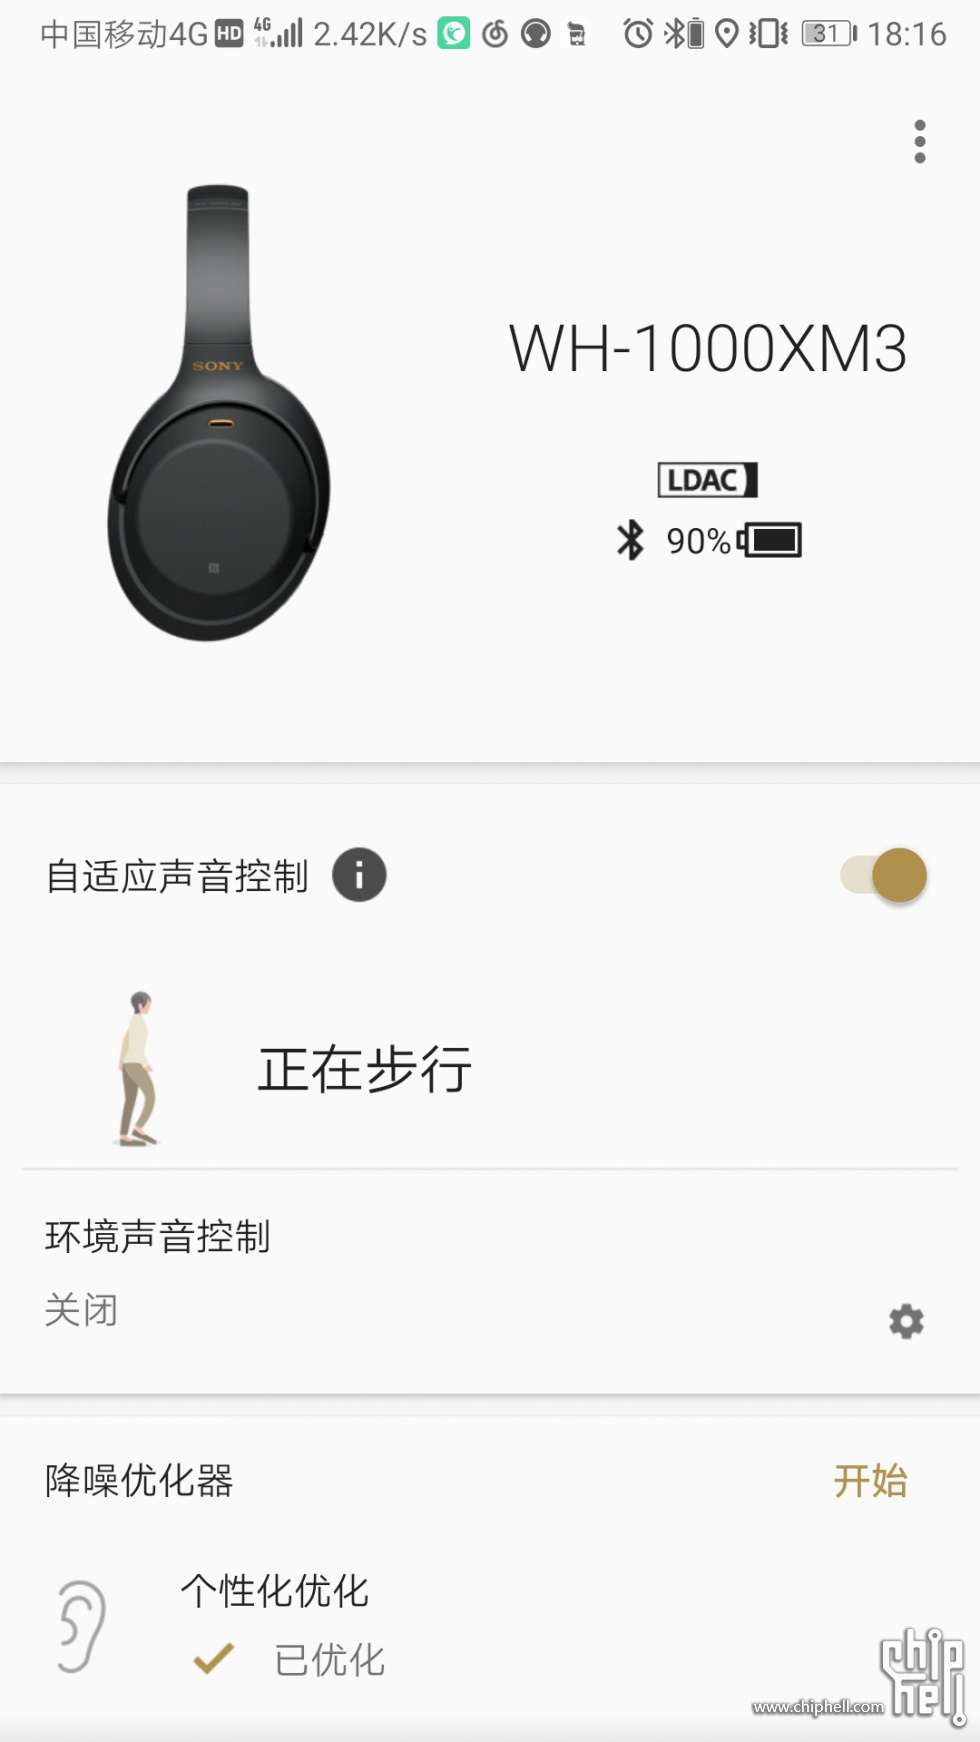 Screenshot_20190505_181659_com.sony.songpal.mdr.jpg